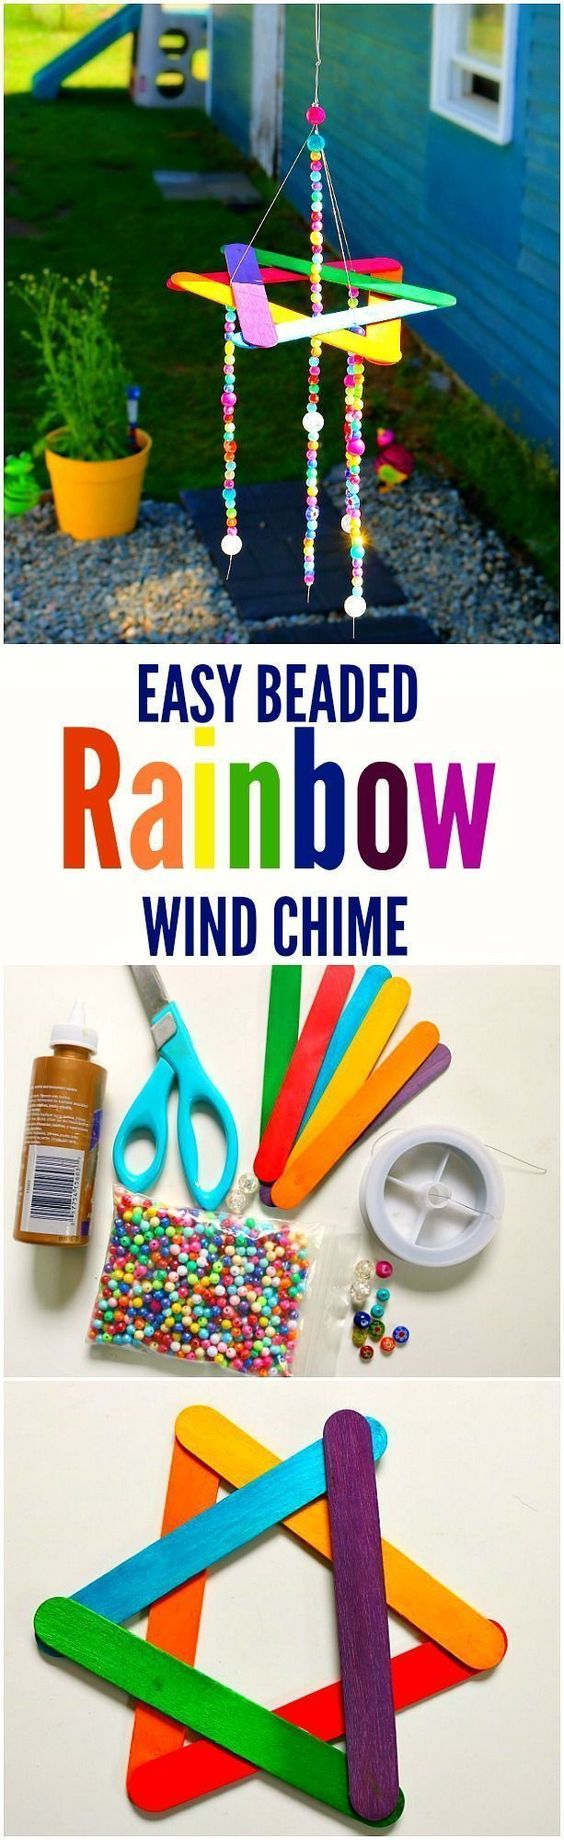 Easy Beaded Rainbow Wind Chime.